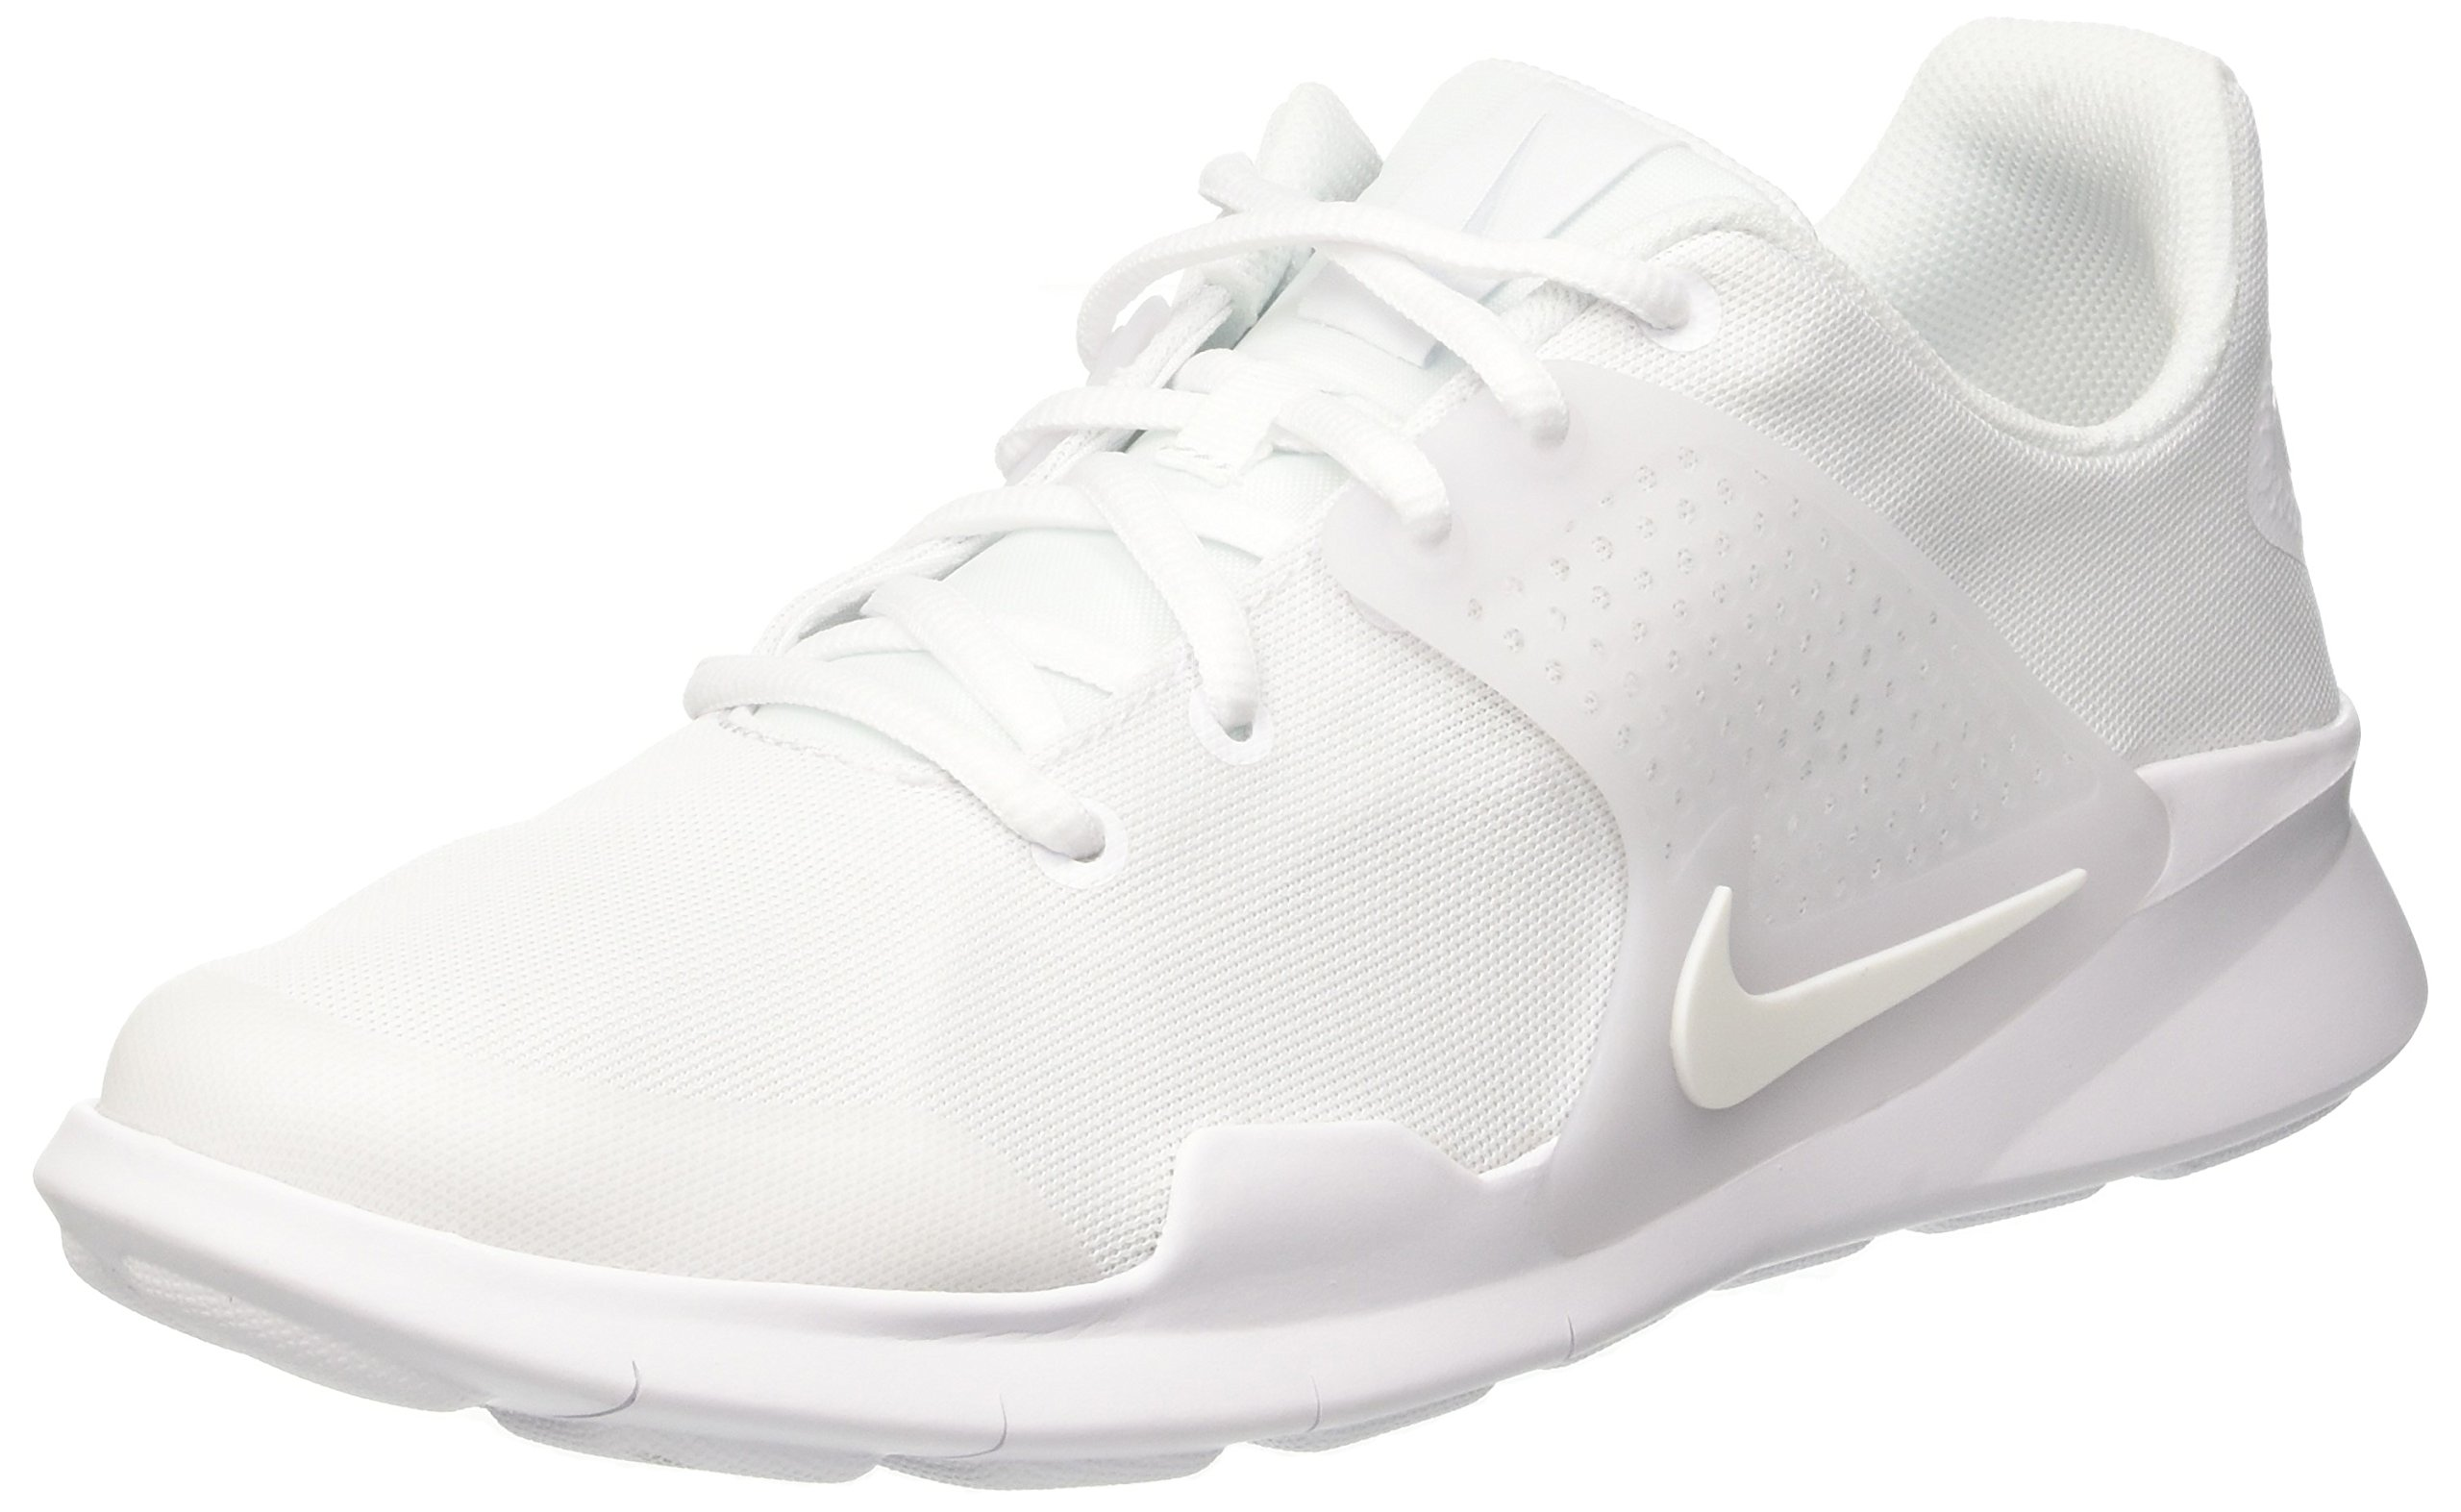 NIKE Men's Arrowz Sneaker White, 11.5 Regular US